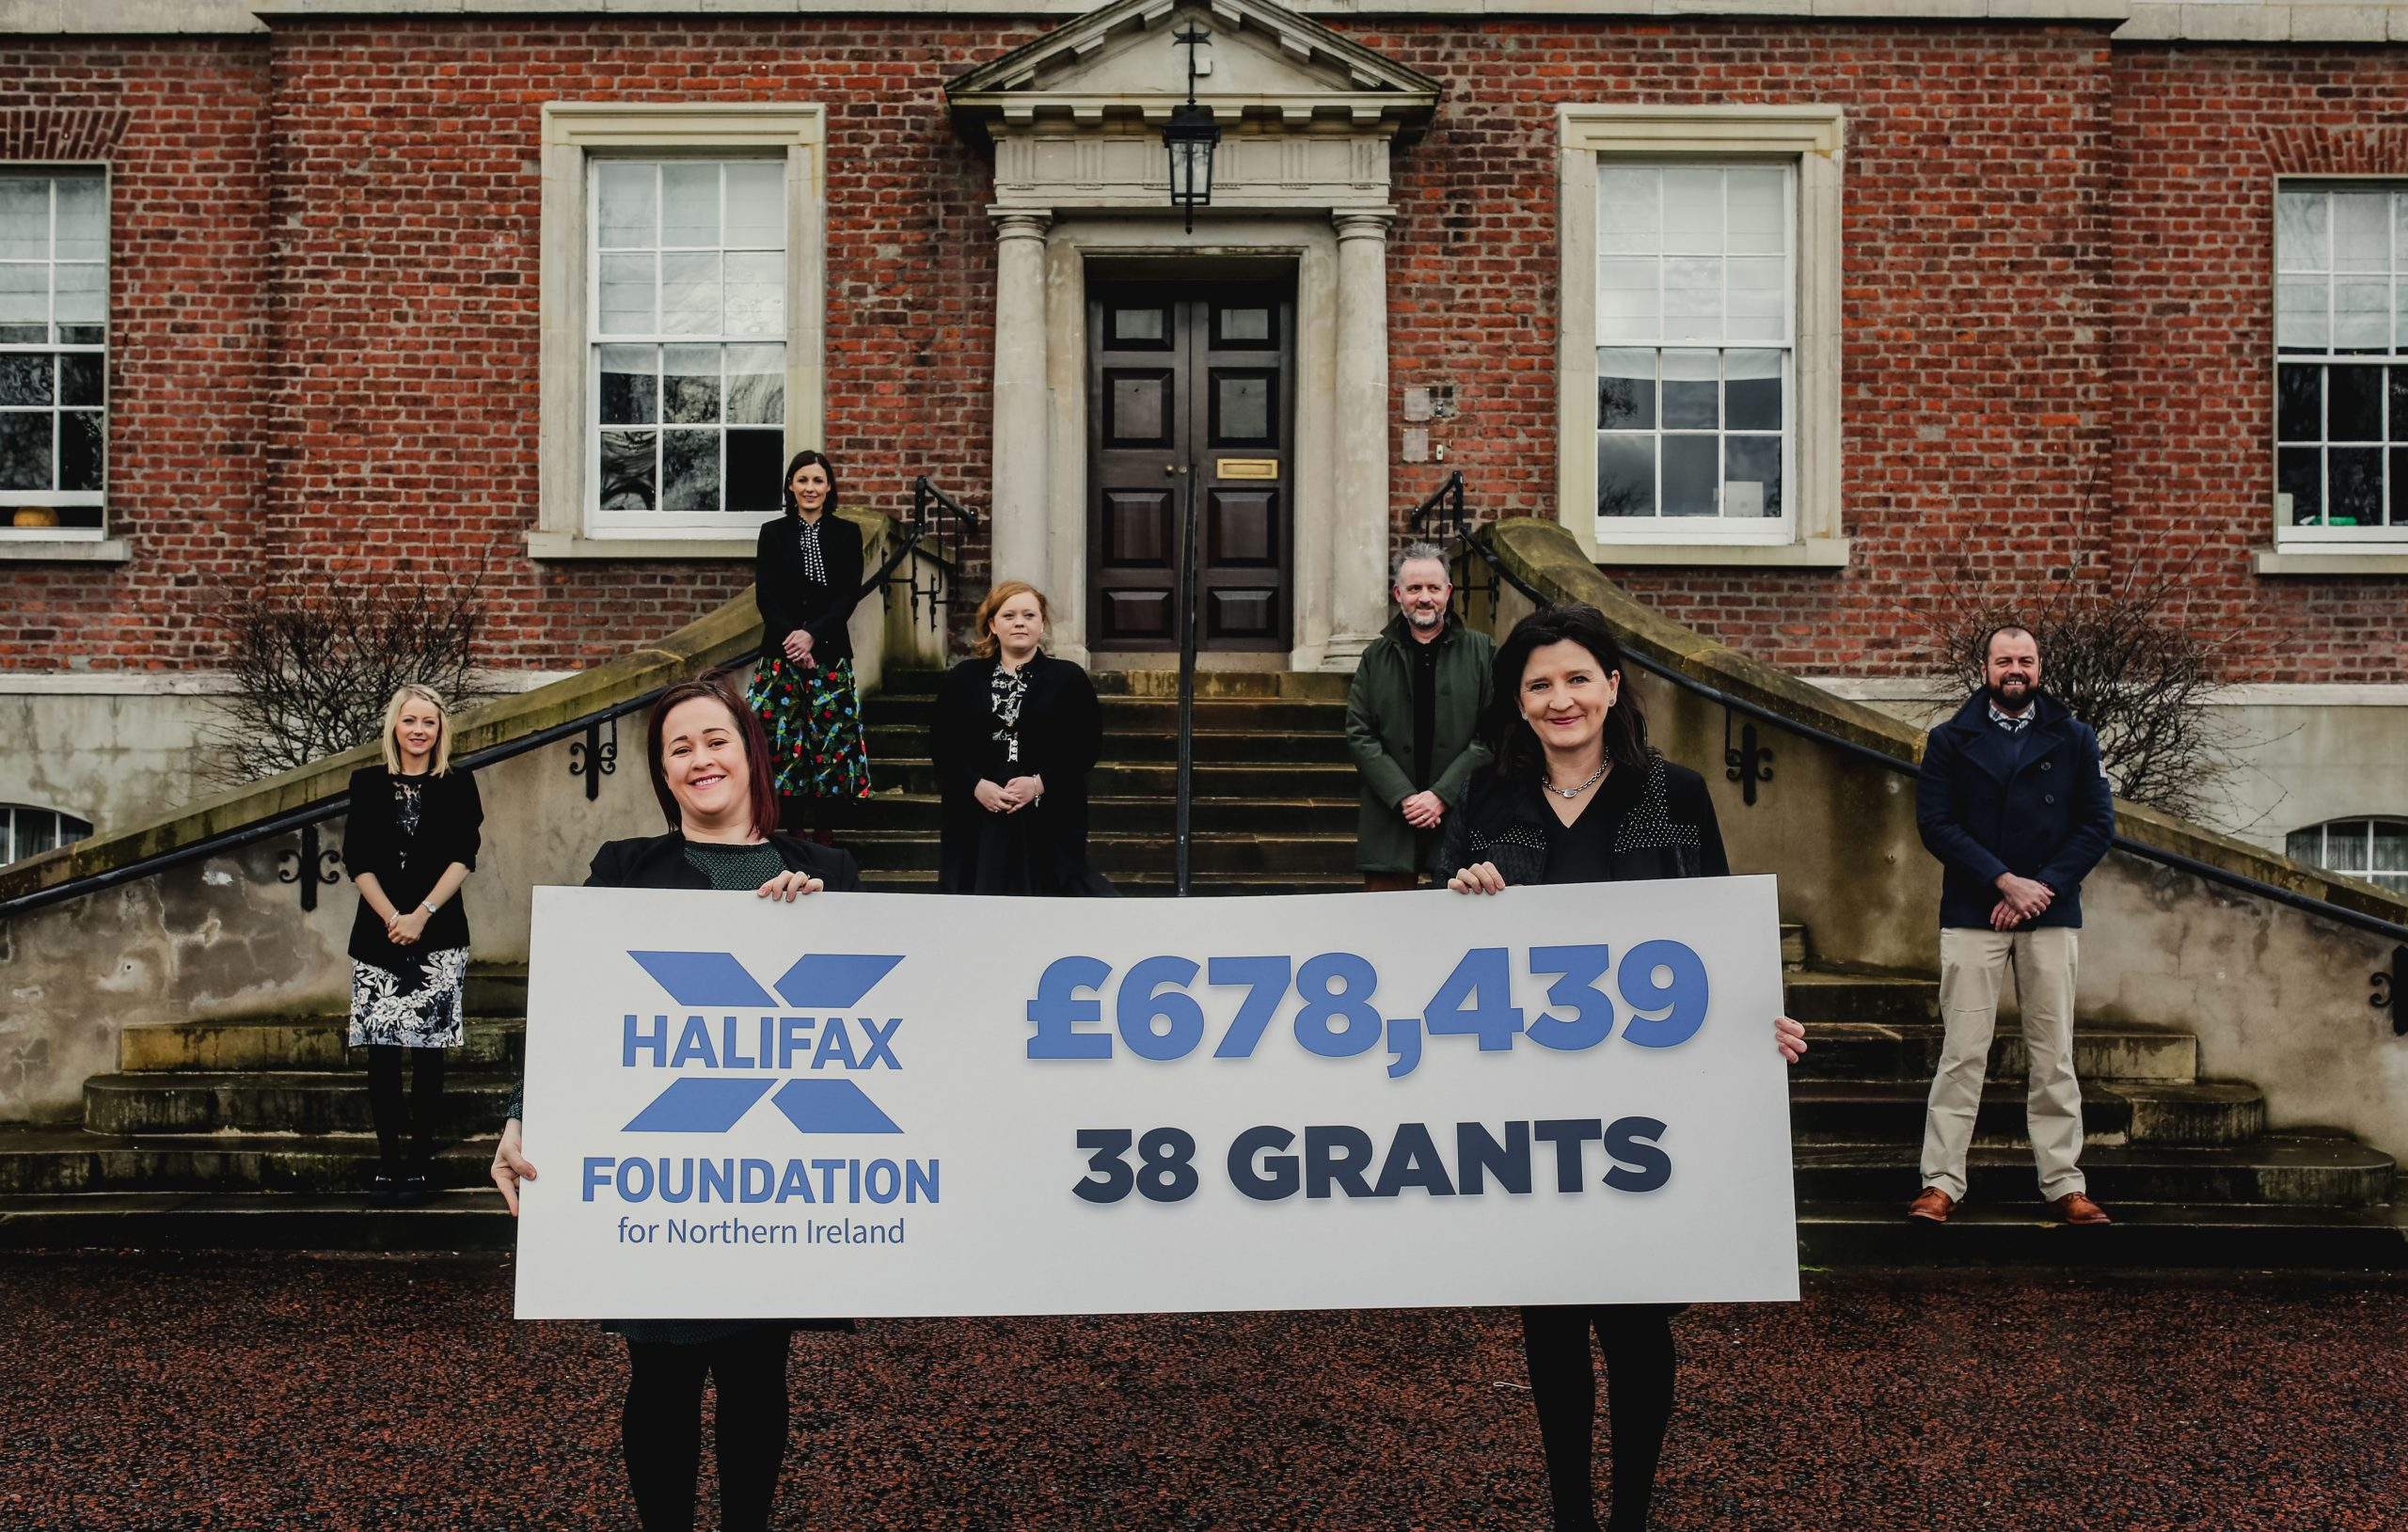 Halifax Foundation commits £678,439 to NI projects